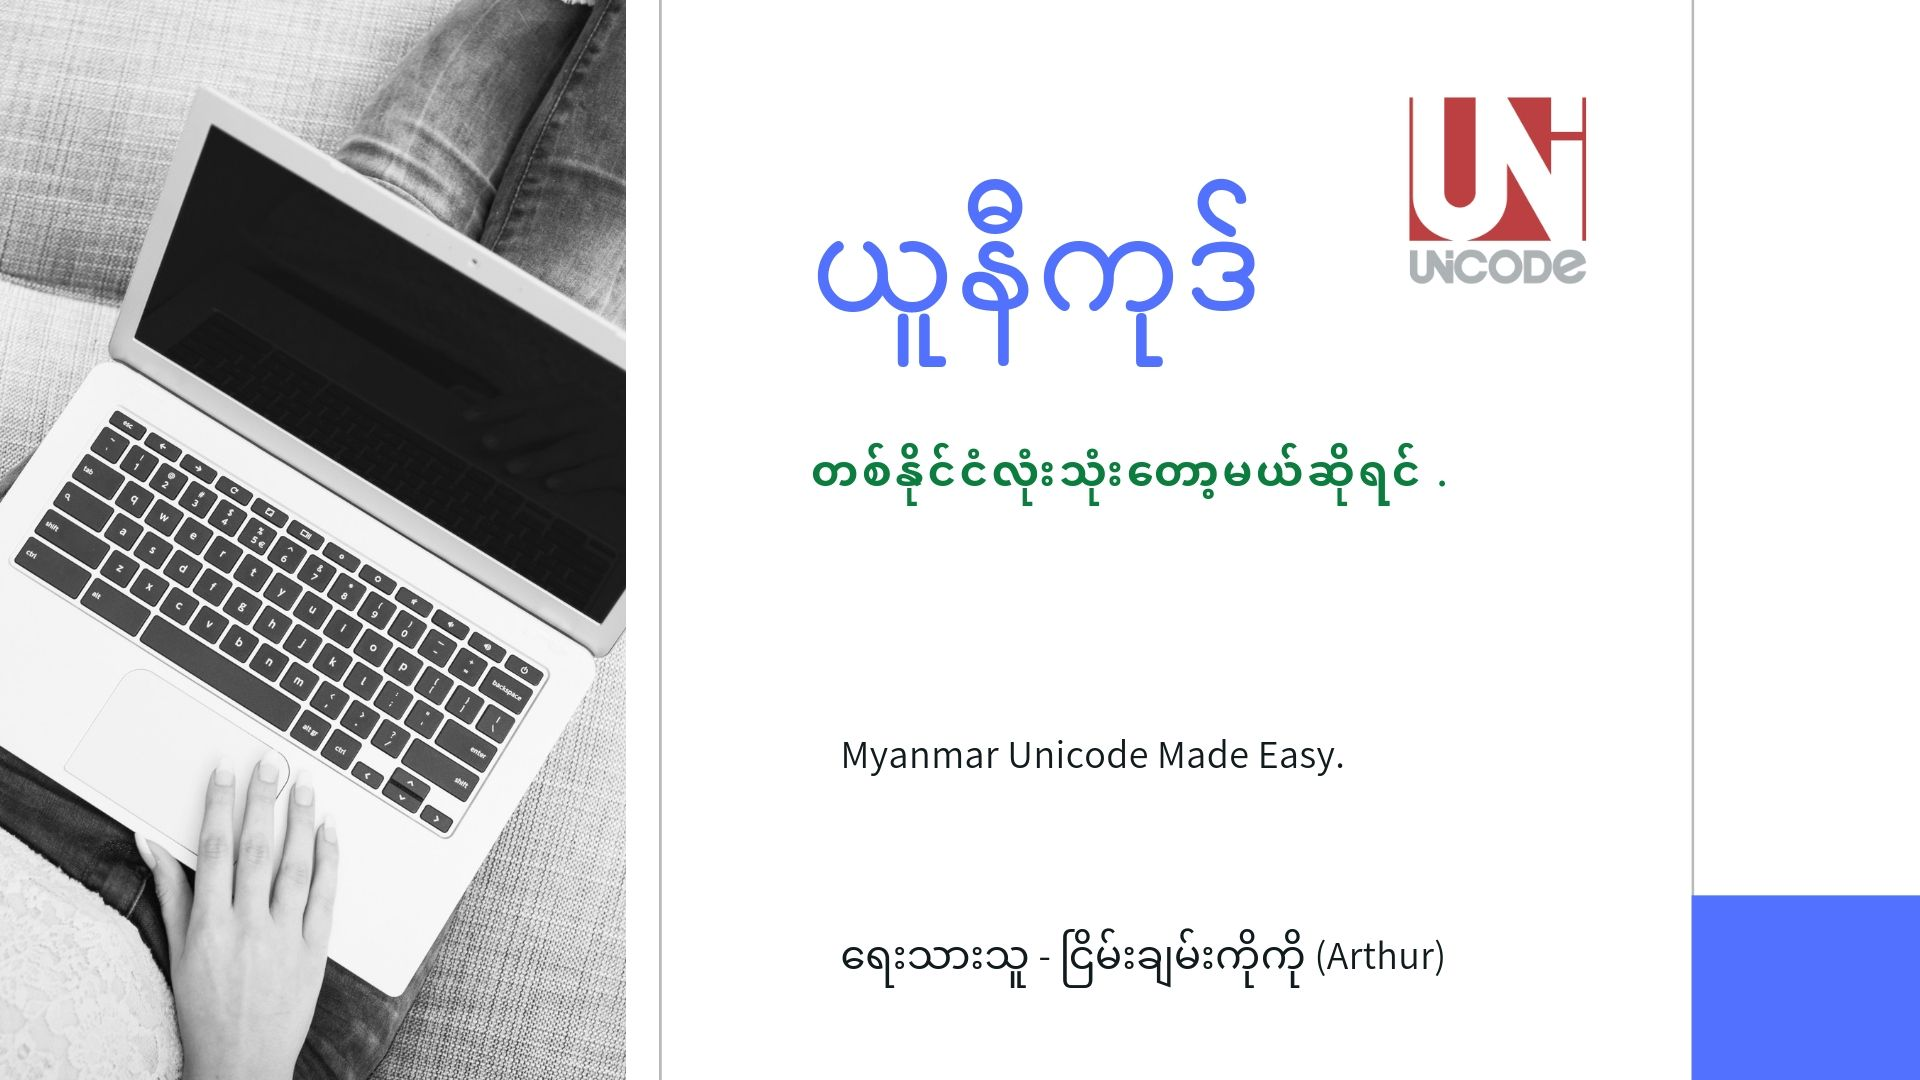 Myanmar Unicode made easy.